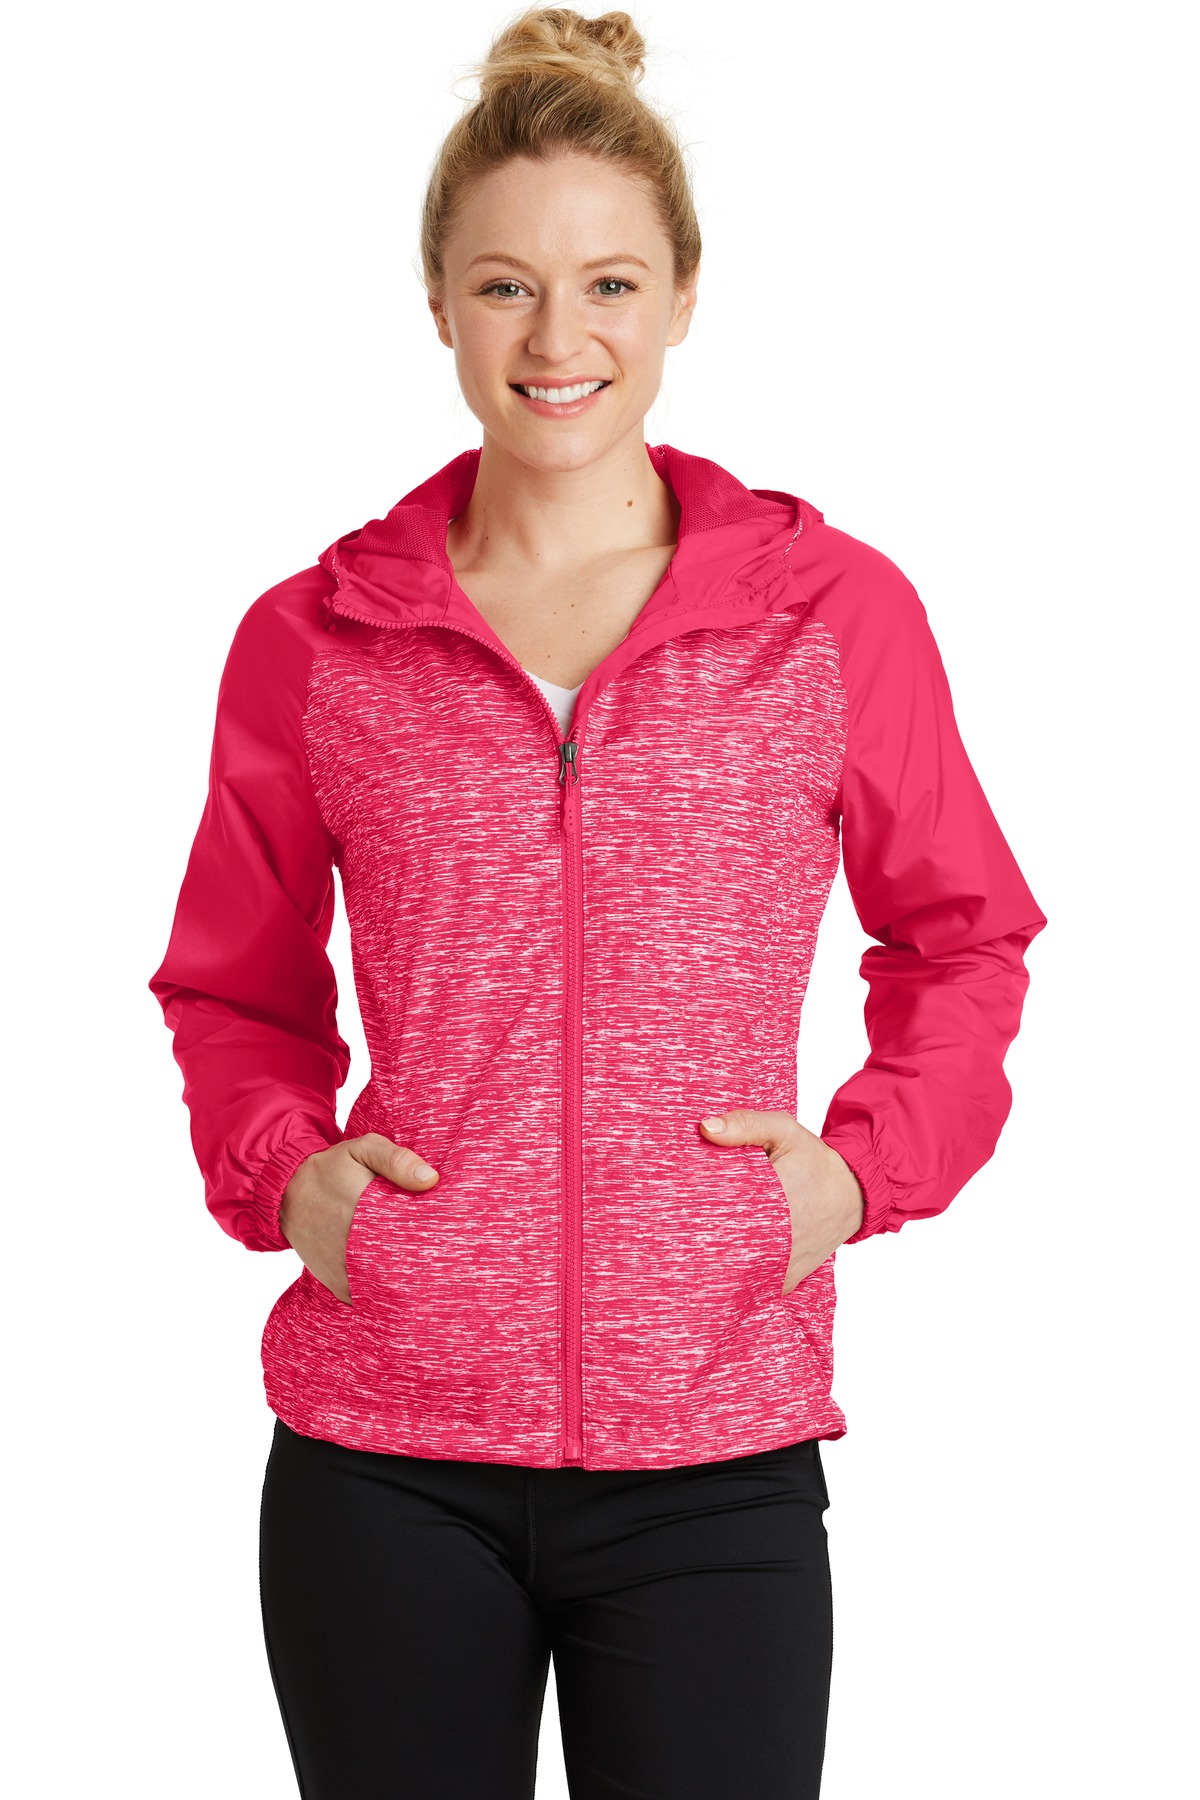 Sport-Tek ®  Ladies Heather Colorblock Raglan Hooded Wind Jacket. LST40 - Pink Raspberry Heather/ Pink Raspberry